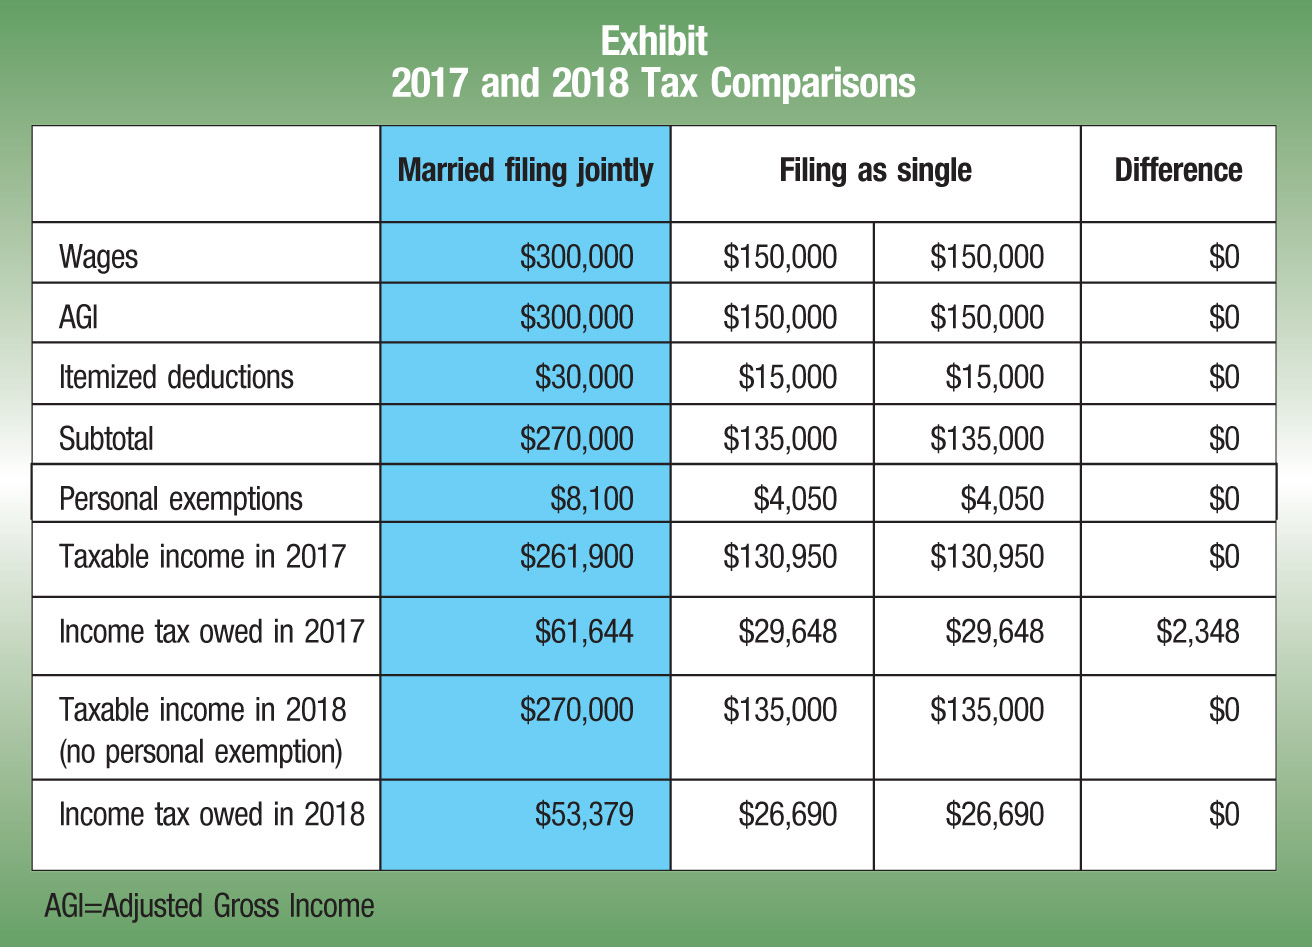 Married filing jointly; Filing as single; Difference Wages; $300,000; $150,000; $150,000; $0 AGI; $300,000; $150,000; $150,000; $0 Itemized deductions; $30,000; $15,000; $15,000; $0 Subtotal; $270,000; $135,000; $135,000; $0 Personal exemptions; $8,100; $4,050; $4,050; $0 Taxable income in 2017; $261,900; $130,950; $130,950; $0 Income tax owed in 2017; $61,644; $29,648; $29,648; $2,348 Taxable income in 2018 (no personal exemption) $270,000; $135,000; $135,000; $0 Income tax owed in 2018; $53,379; $26,690; $26,690; $0 AGI =Adjusted Gross Income